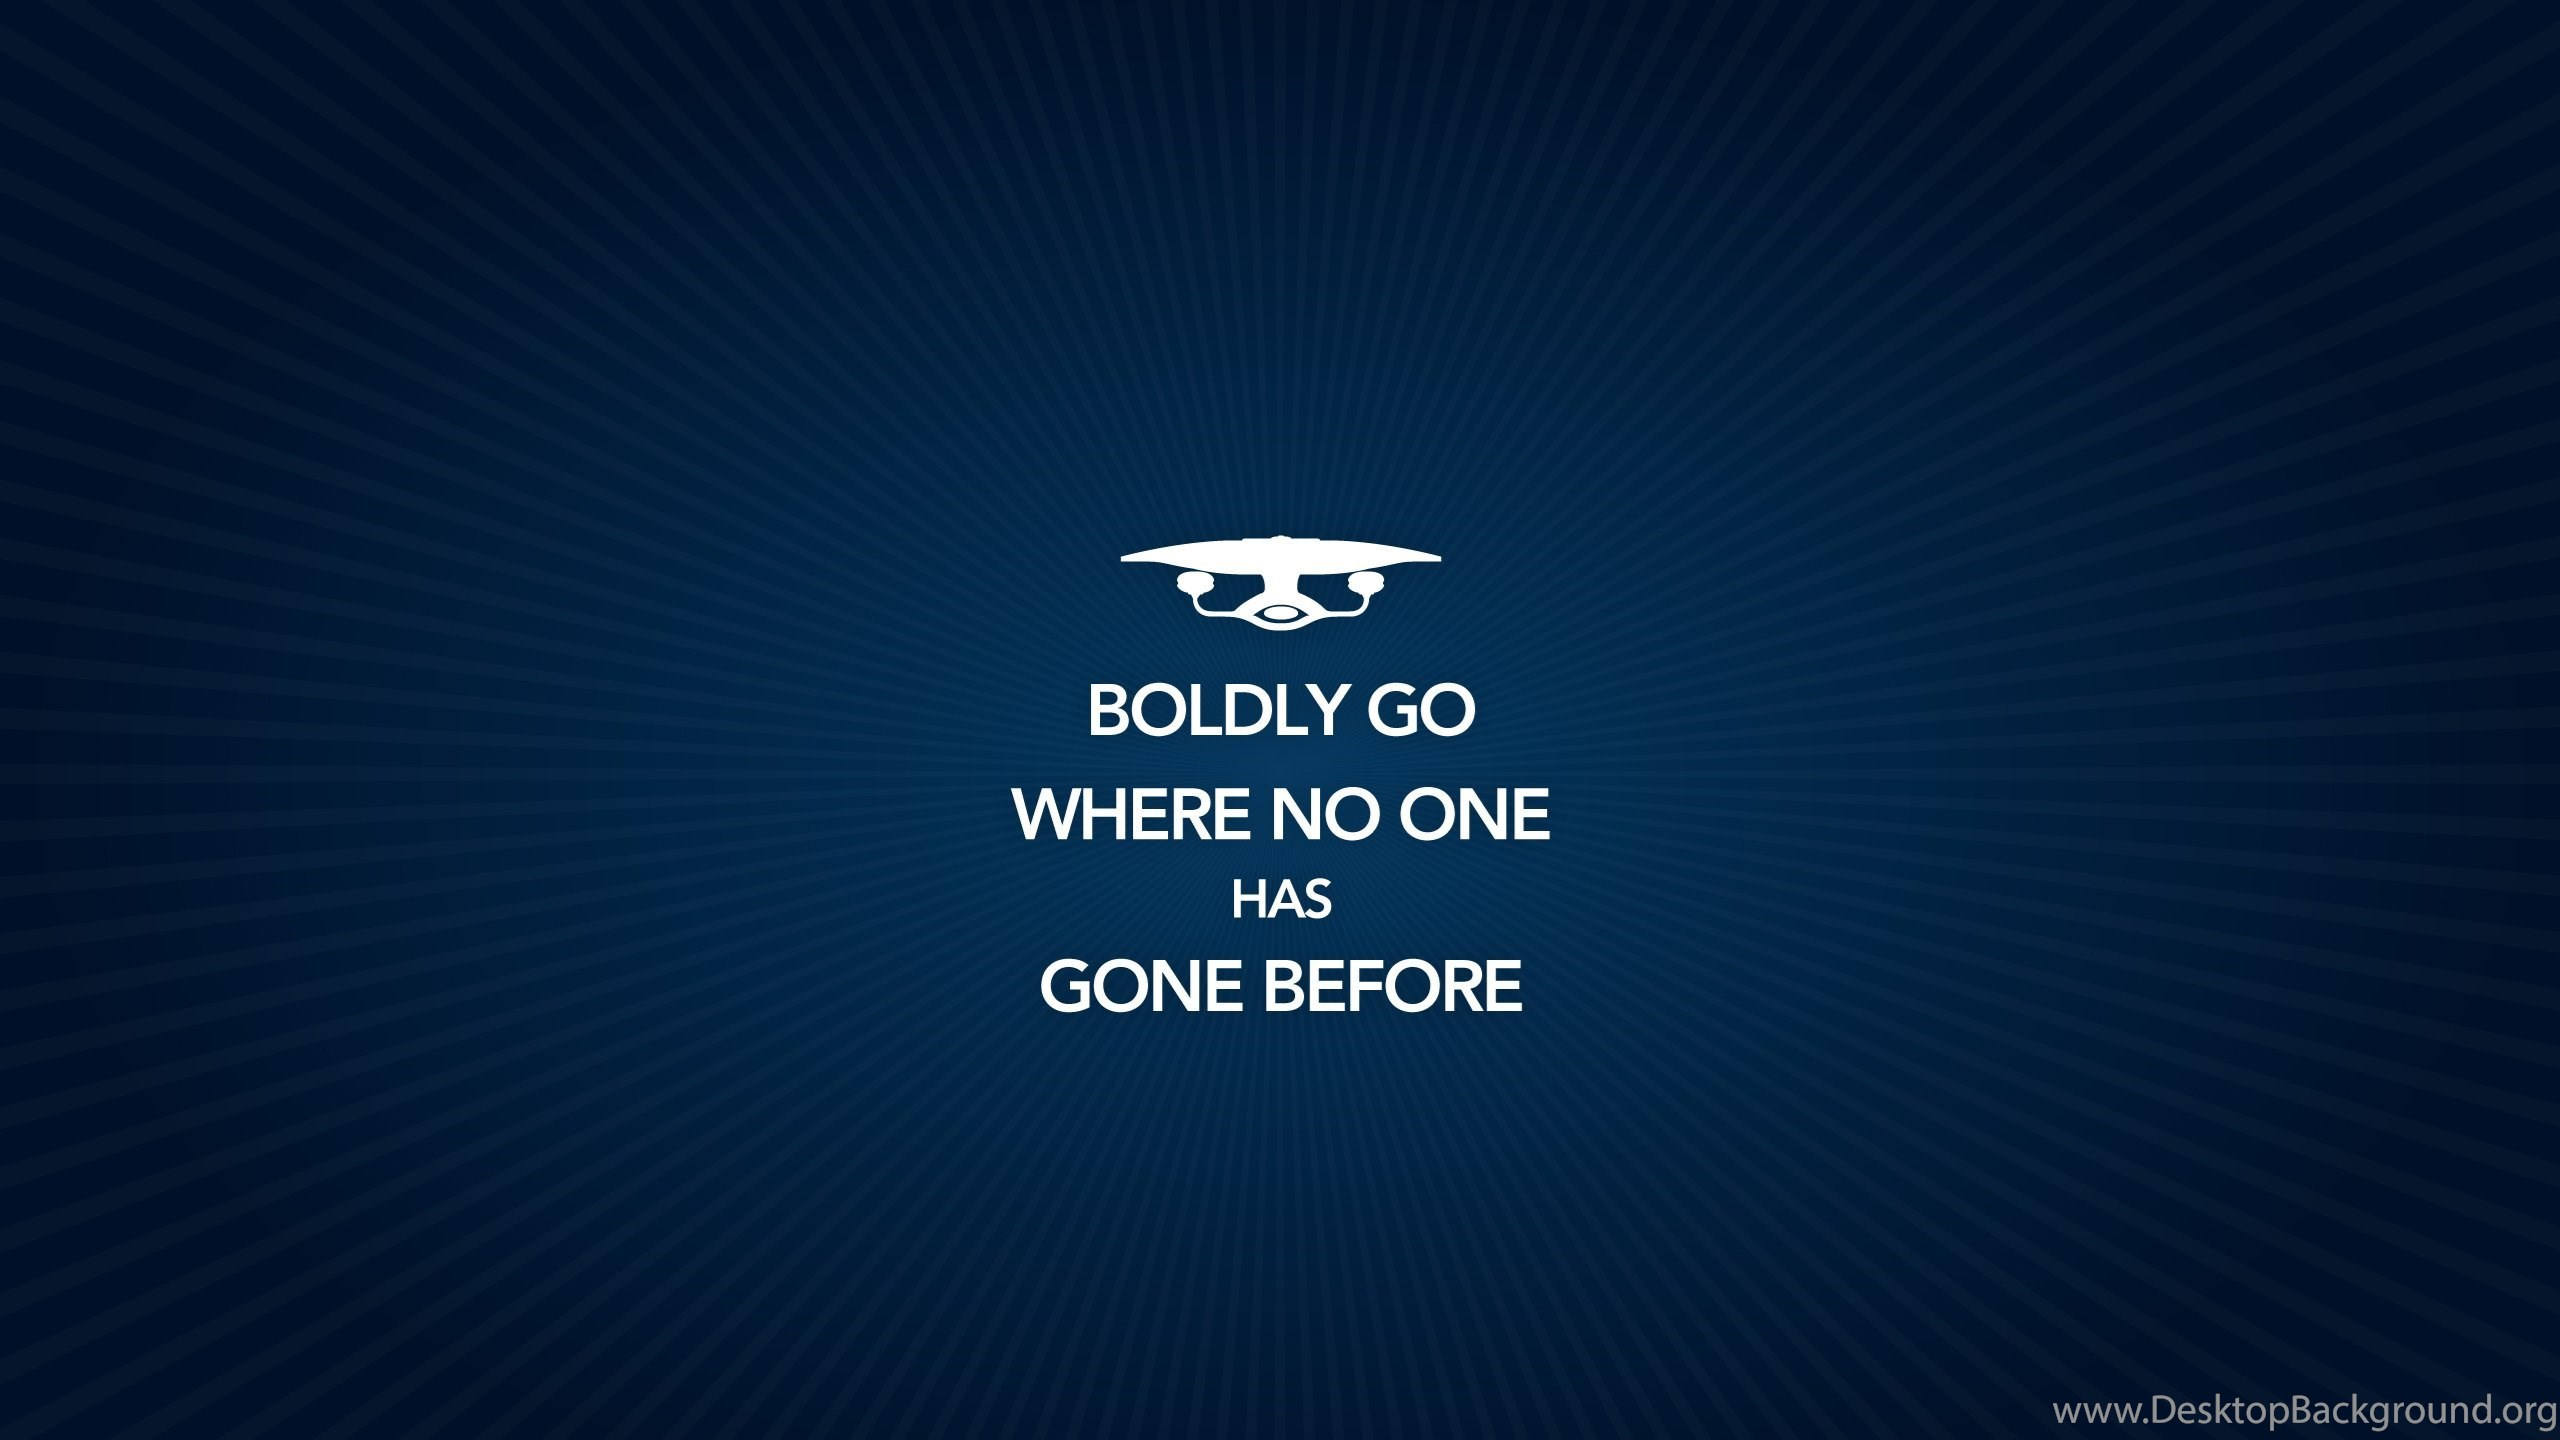 Boldly Go Star Trek Wallpapers Desktop Background